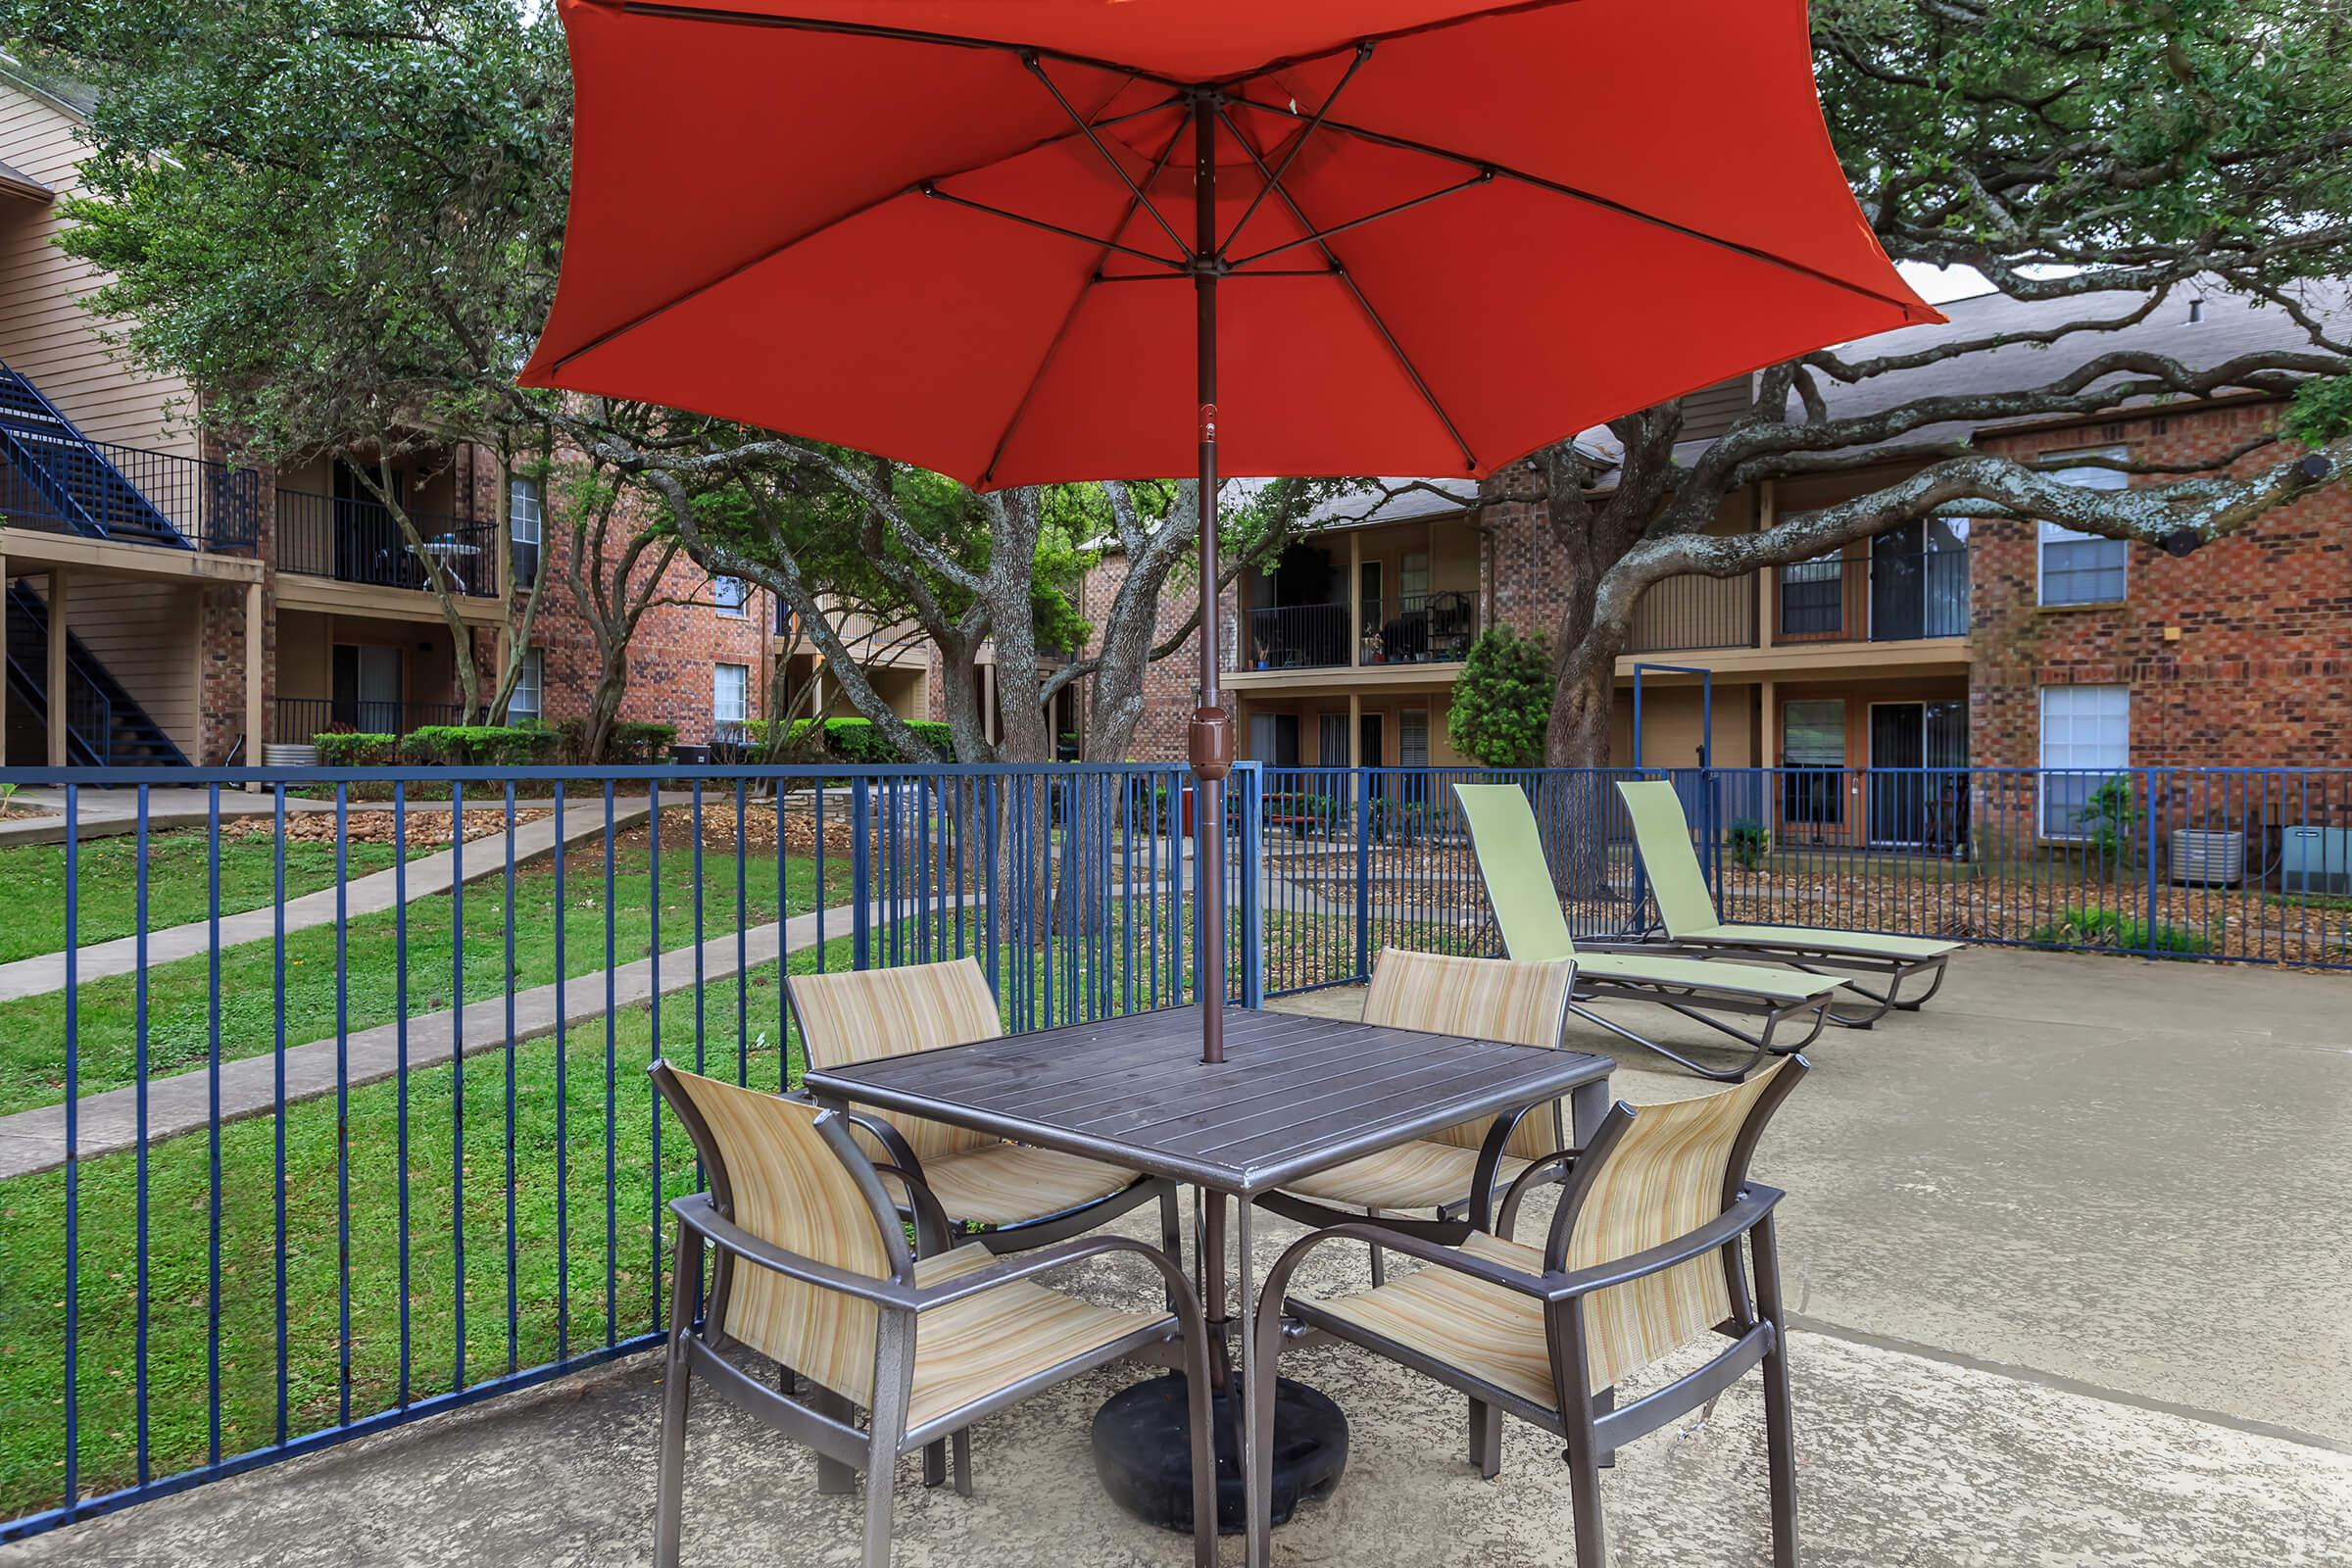 a lawn chair under an umbrella